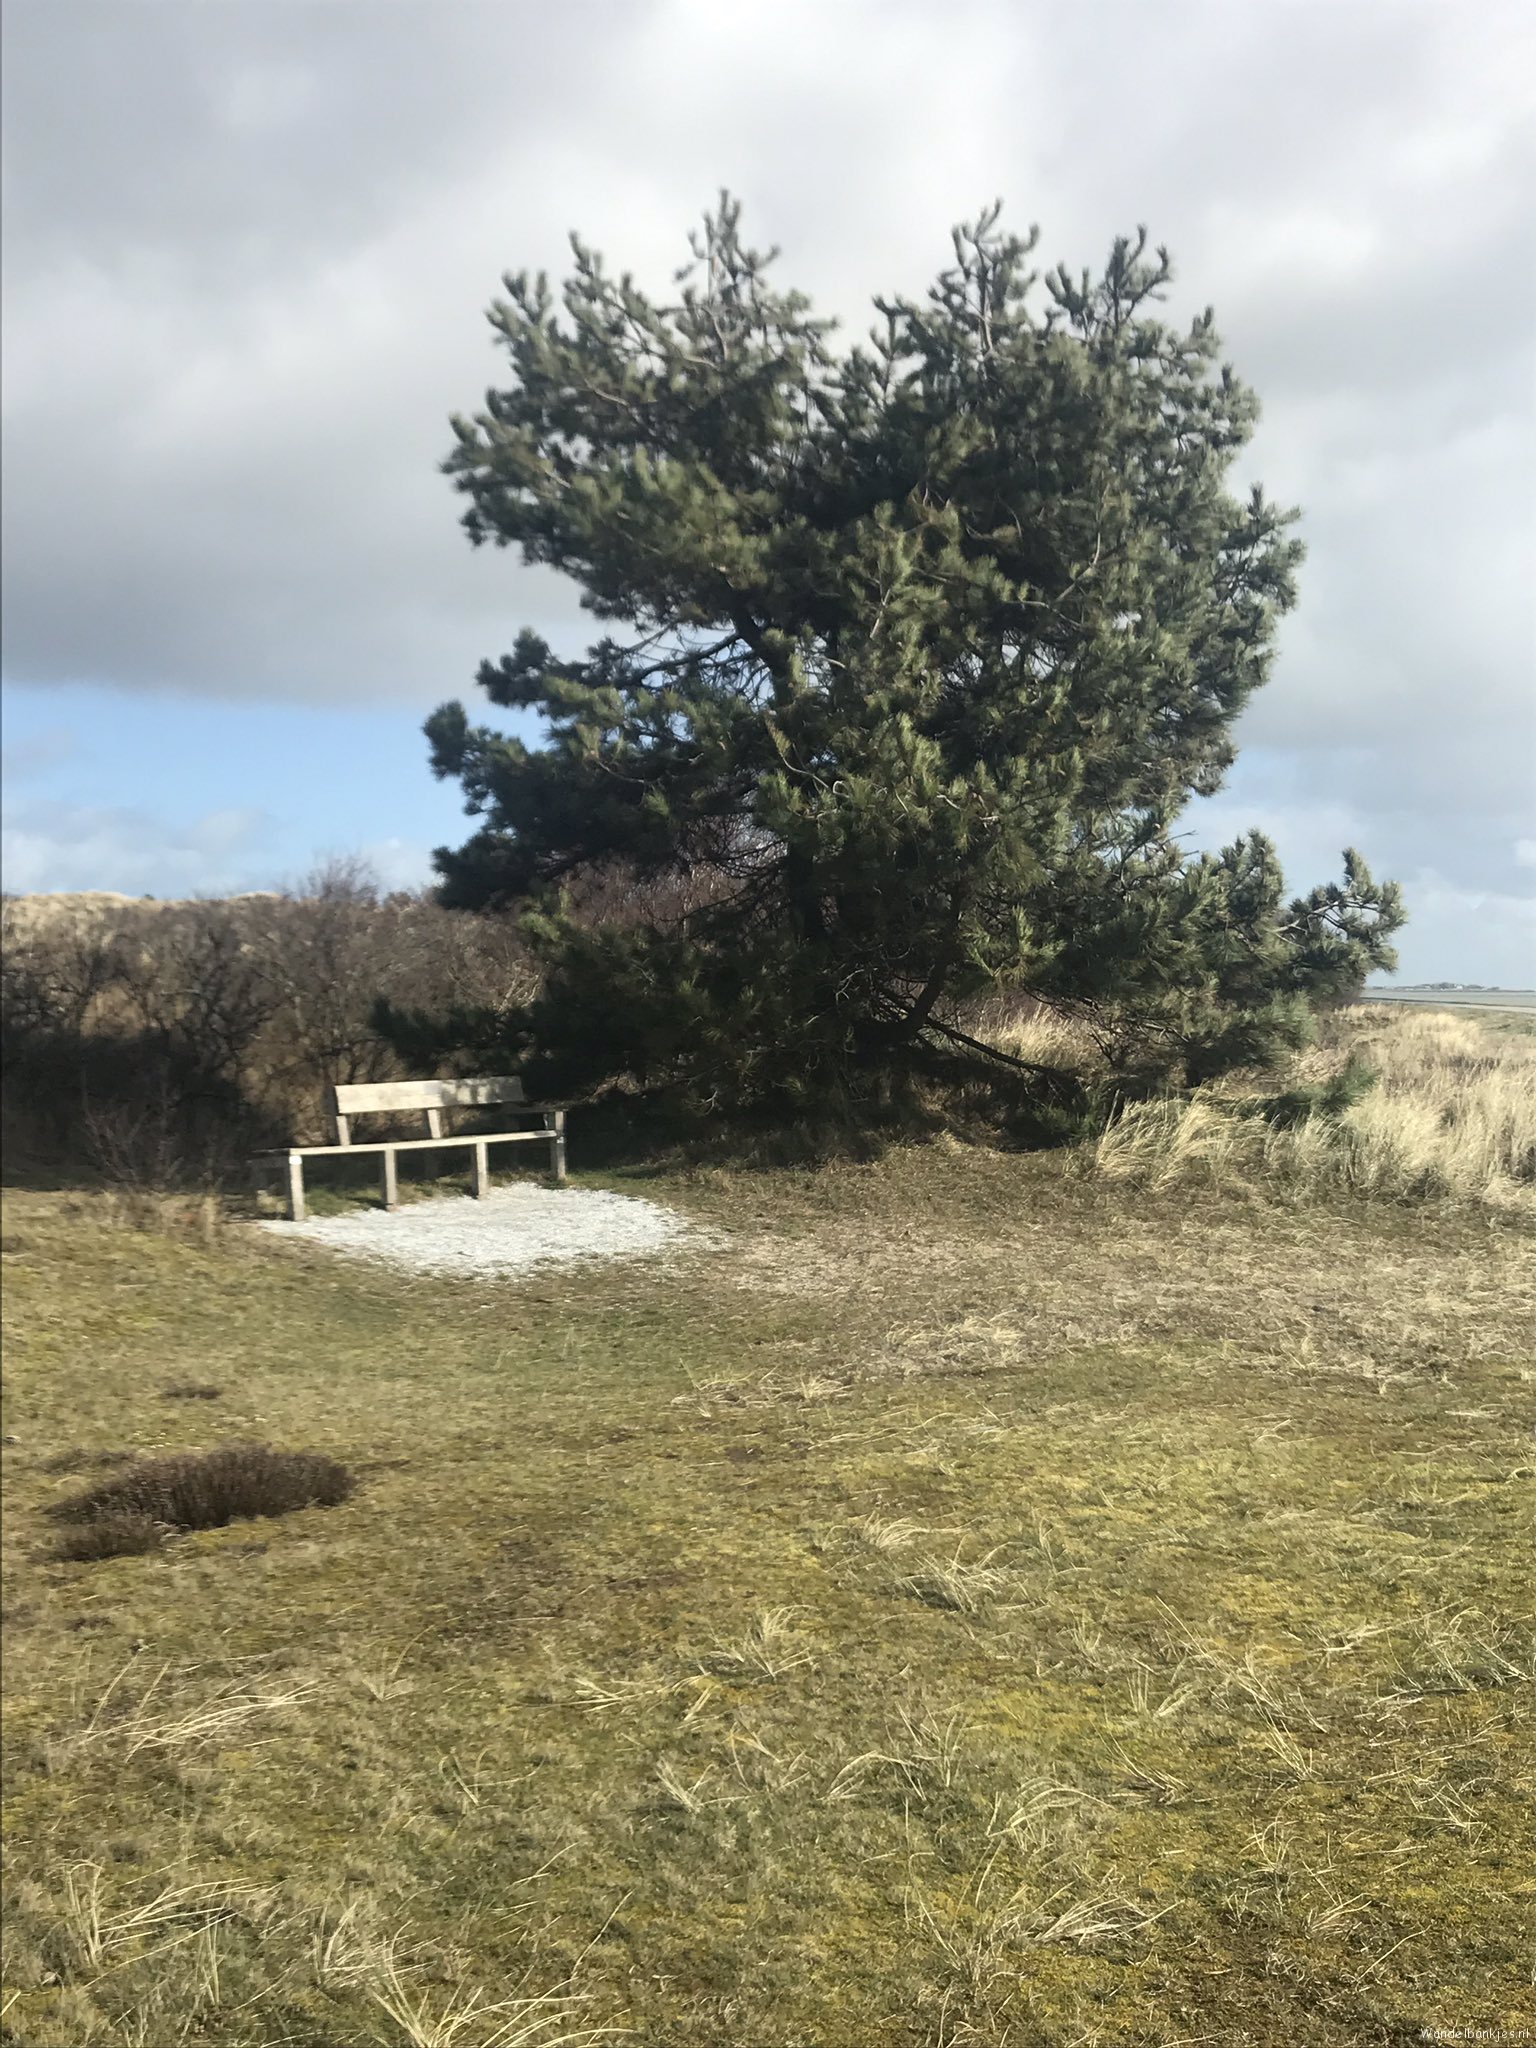 rt-joswalking-what-a-wonderful-walking-island-vlieland-hikingnet-walking benches-https-t-co-c4ckambisa